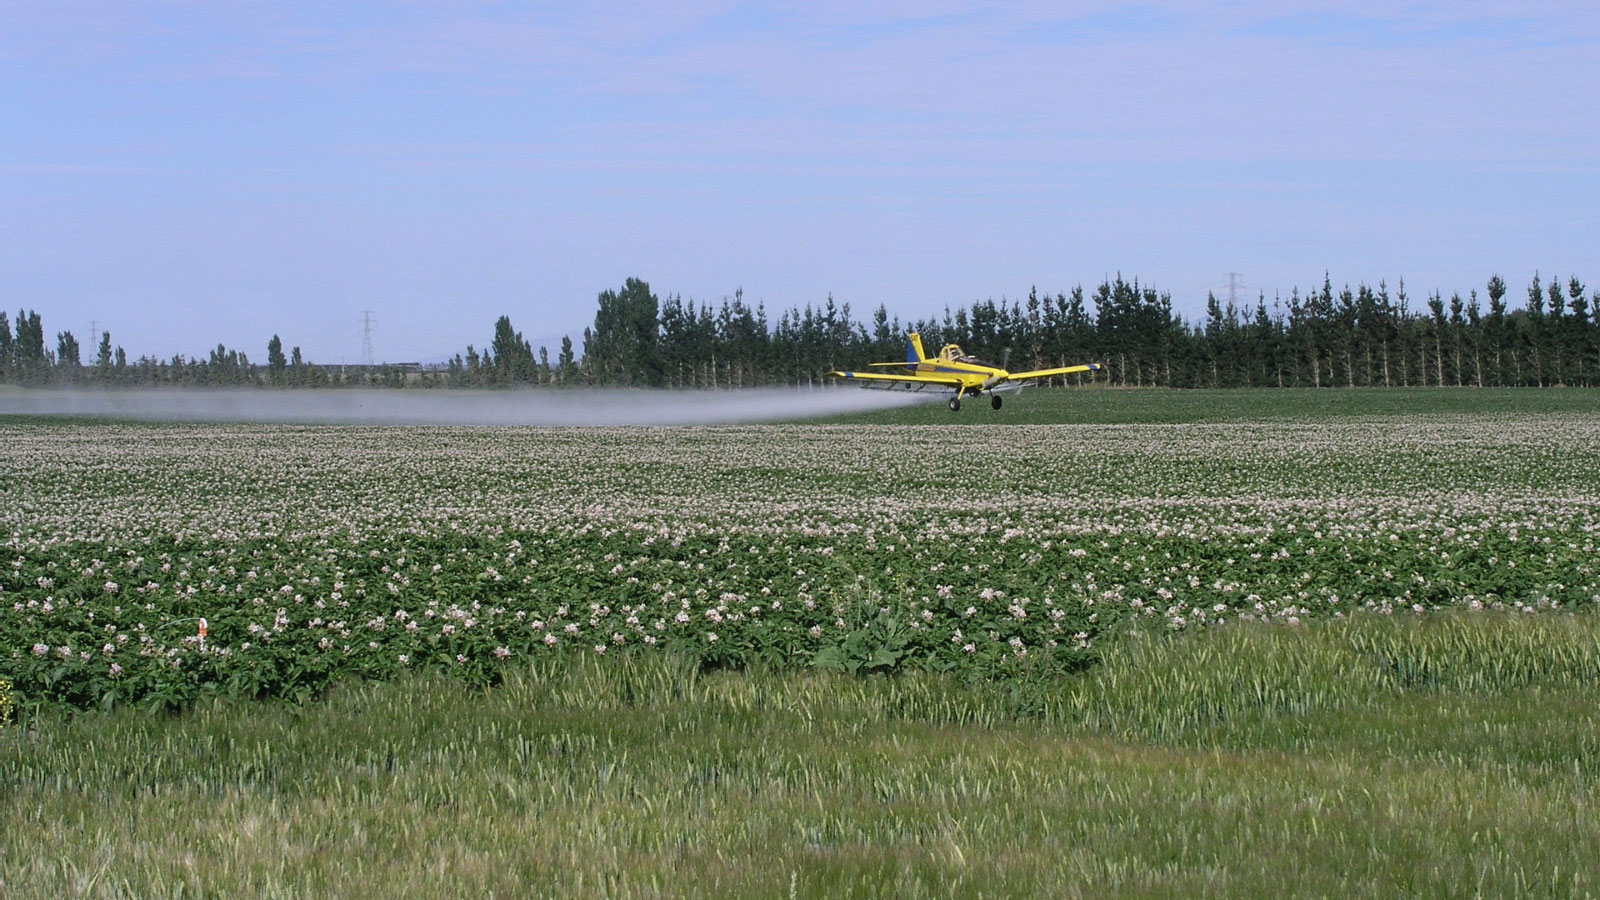 <h4>Chemicals In Farming</h4><p>Dicamba is found in about 1,100 herbicide products. It can only be used on crops that were genetically engineered to be resistant to it, otherwise it will kill them along with the weeds. It easily becomes airborne and drifts away from where it is applied, landing on another farmer's crops and damaging them.</p><em>Public Domain</em>